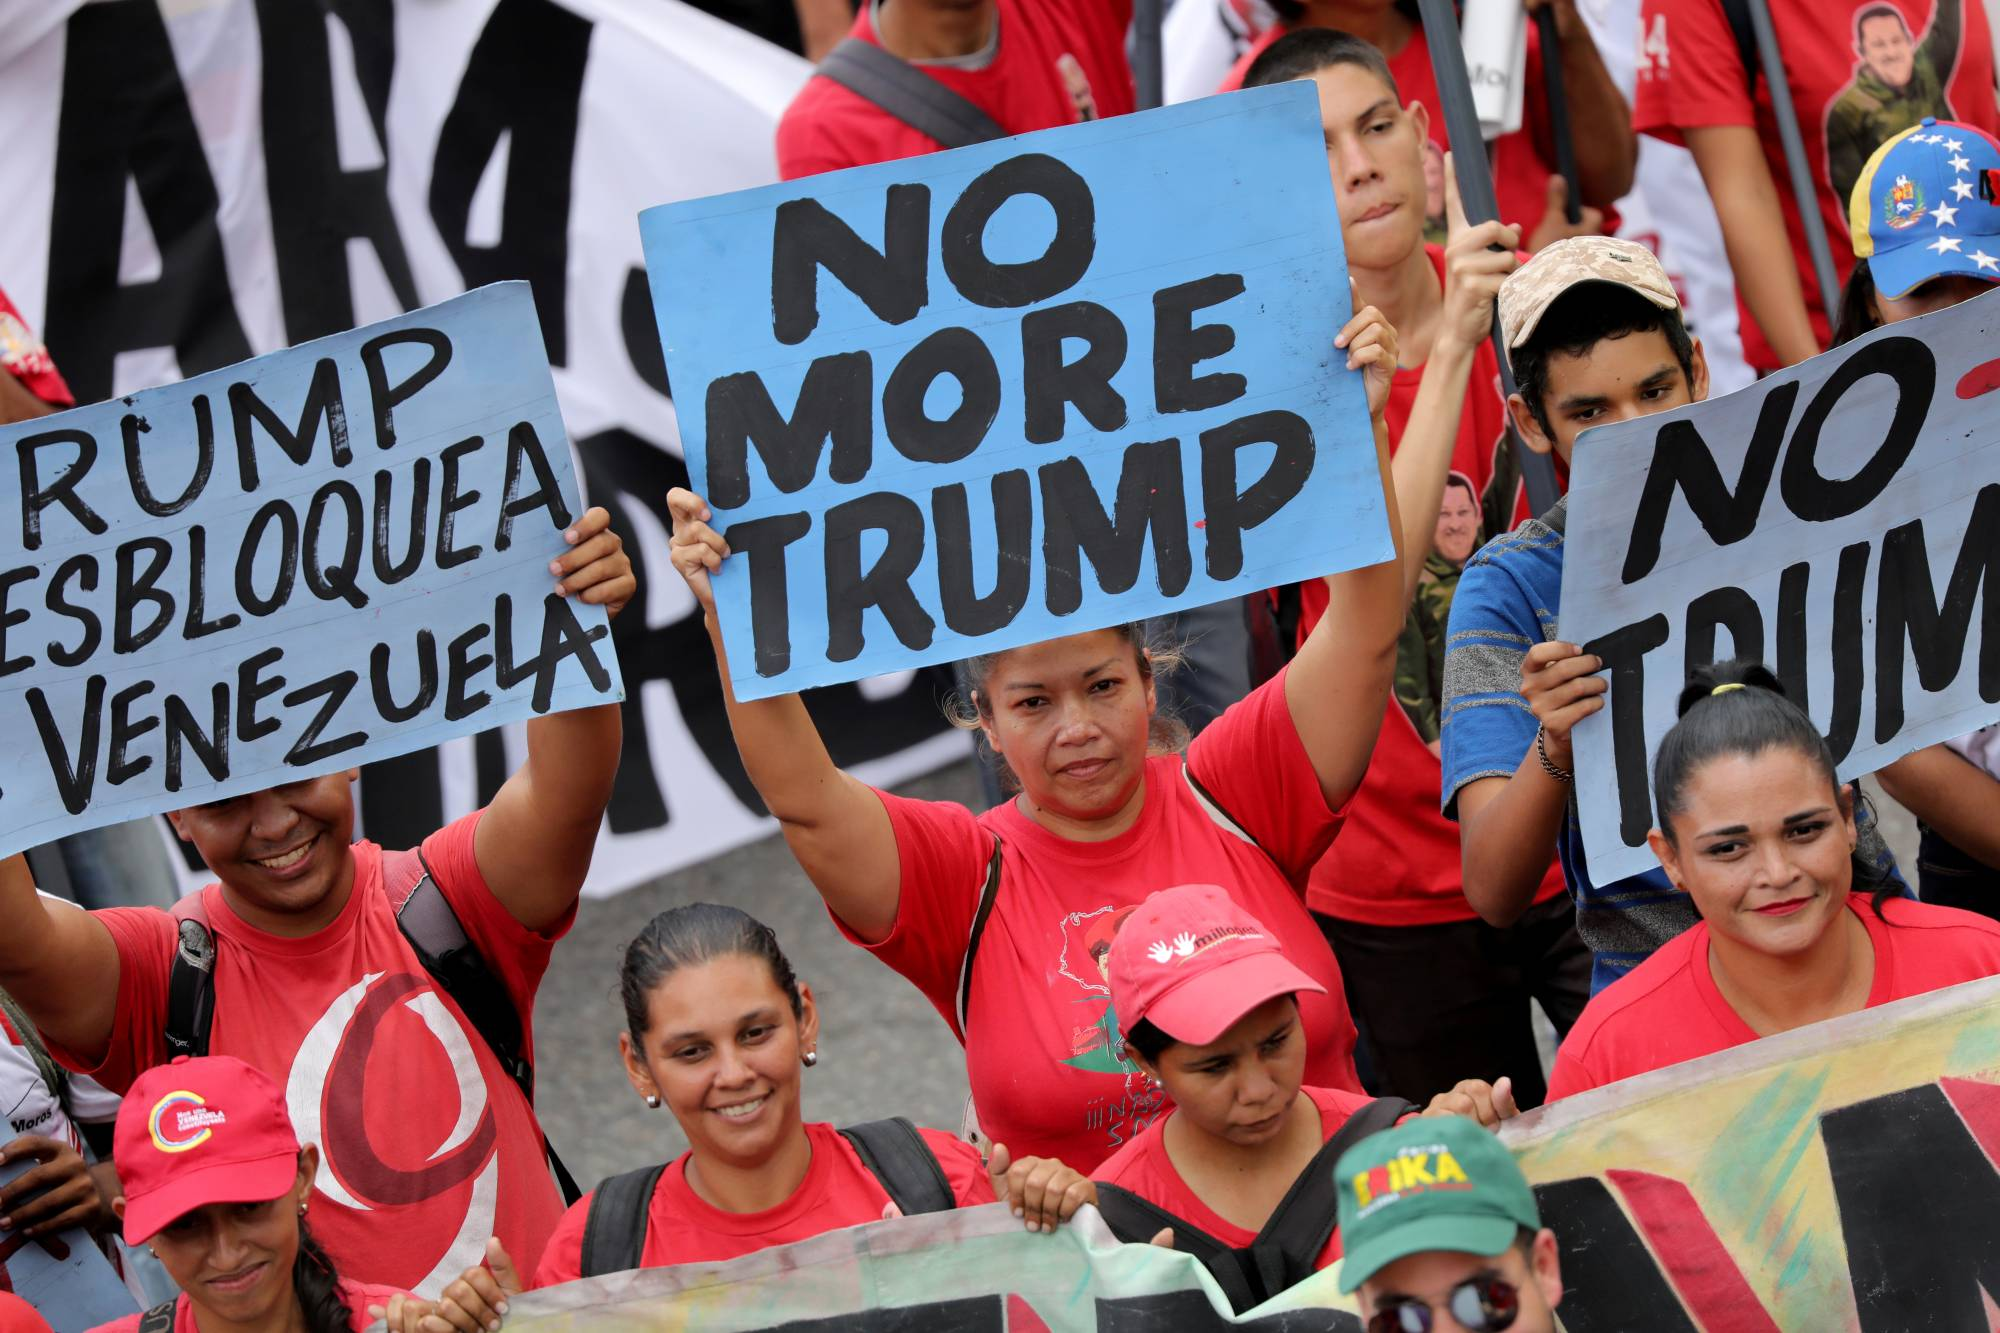 Supporters of Venezuela's President Nicolas Maduro hold anti-Donald Trump banners during a rally against the U.S. sanctions on Venezuela in Caracas in August 2019. | REUTERS